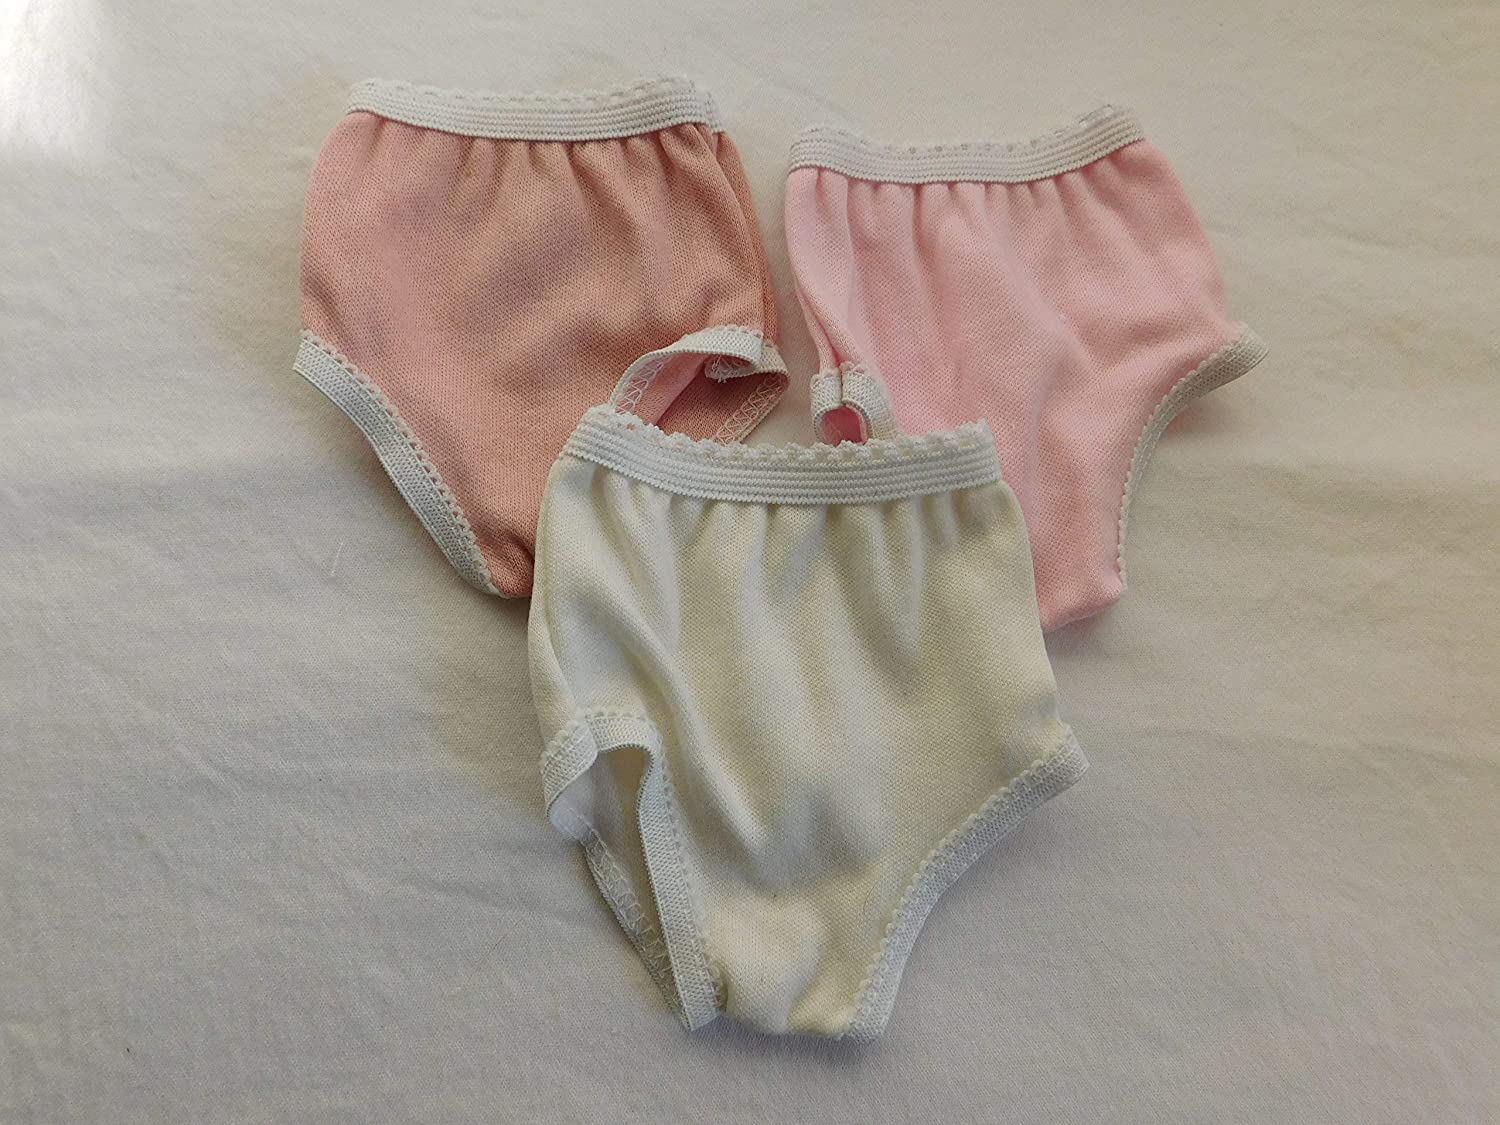 Panties for 18 inch dolls like American Girl pink Underwear off white peach